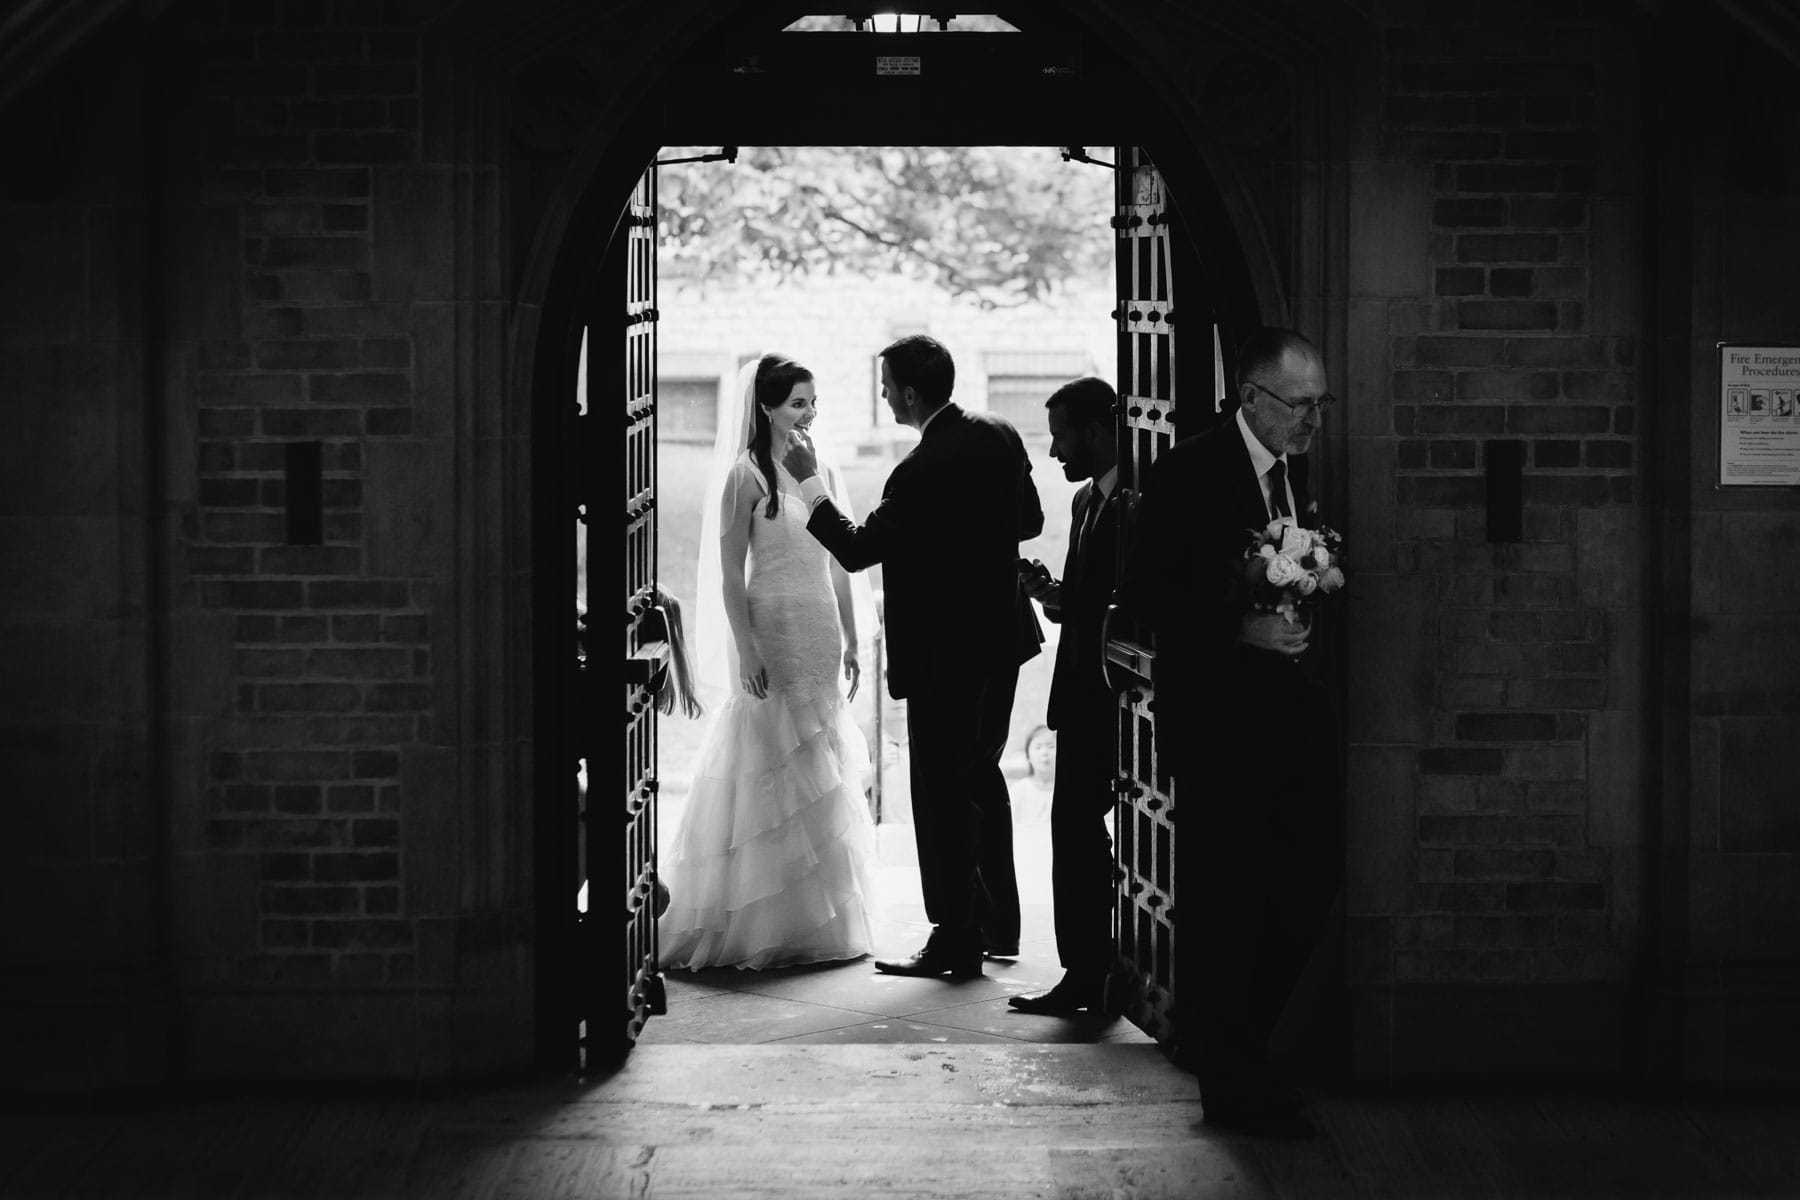 The bride stands in the doorway as her brother adjust her lipster and her father walks into the gloomy shadows with her bouquet in this Hart House wedding photo.